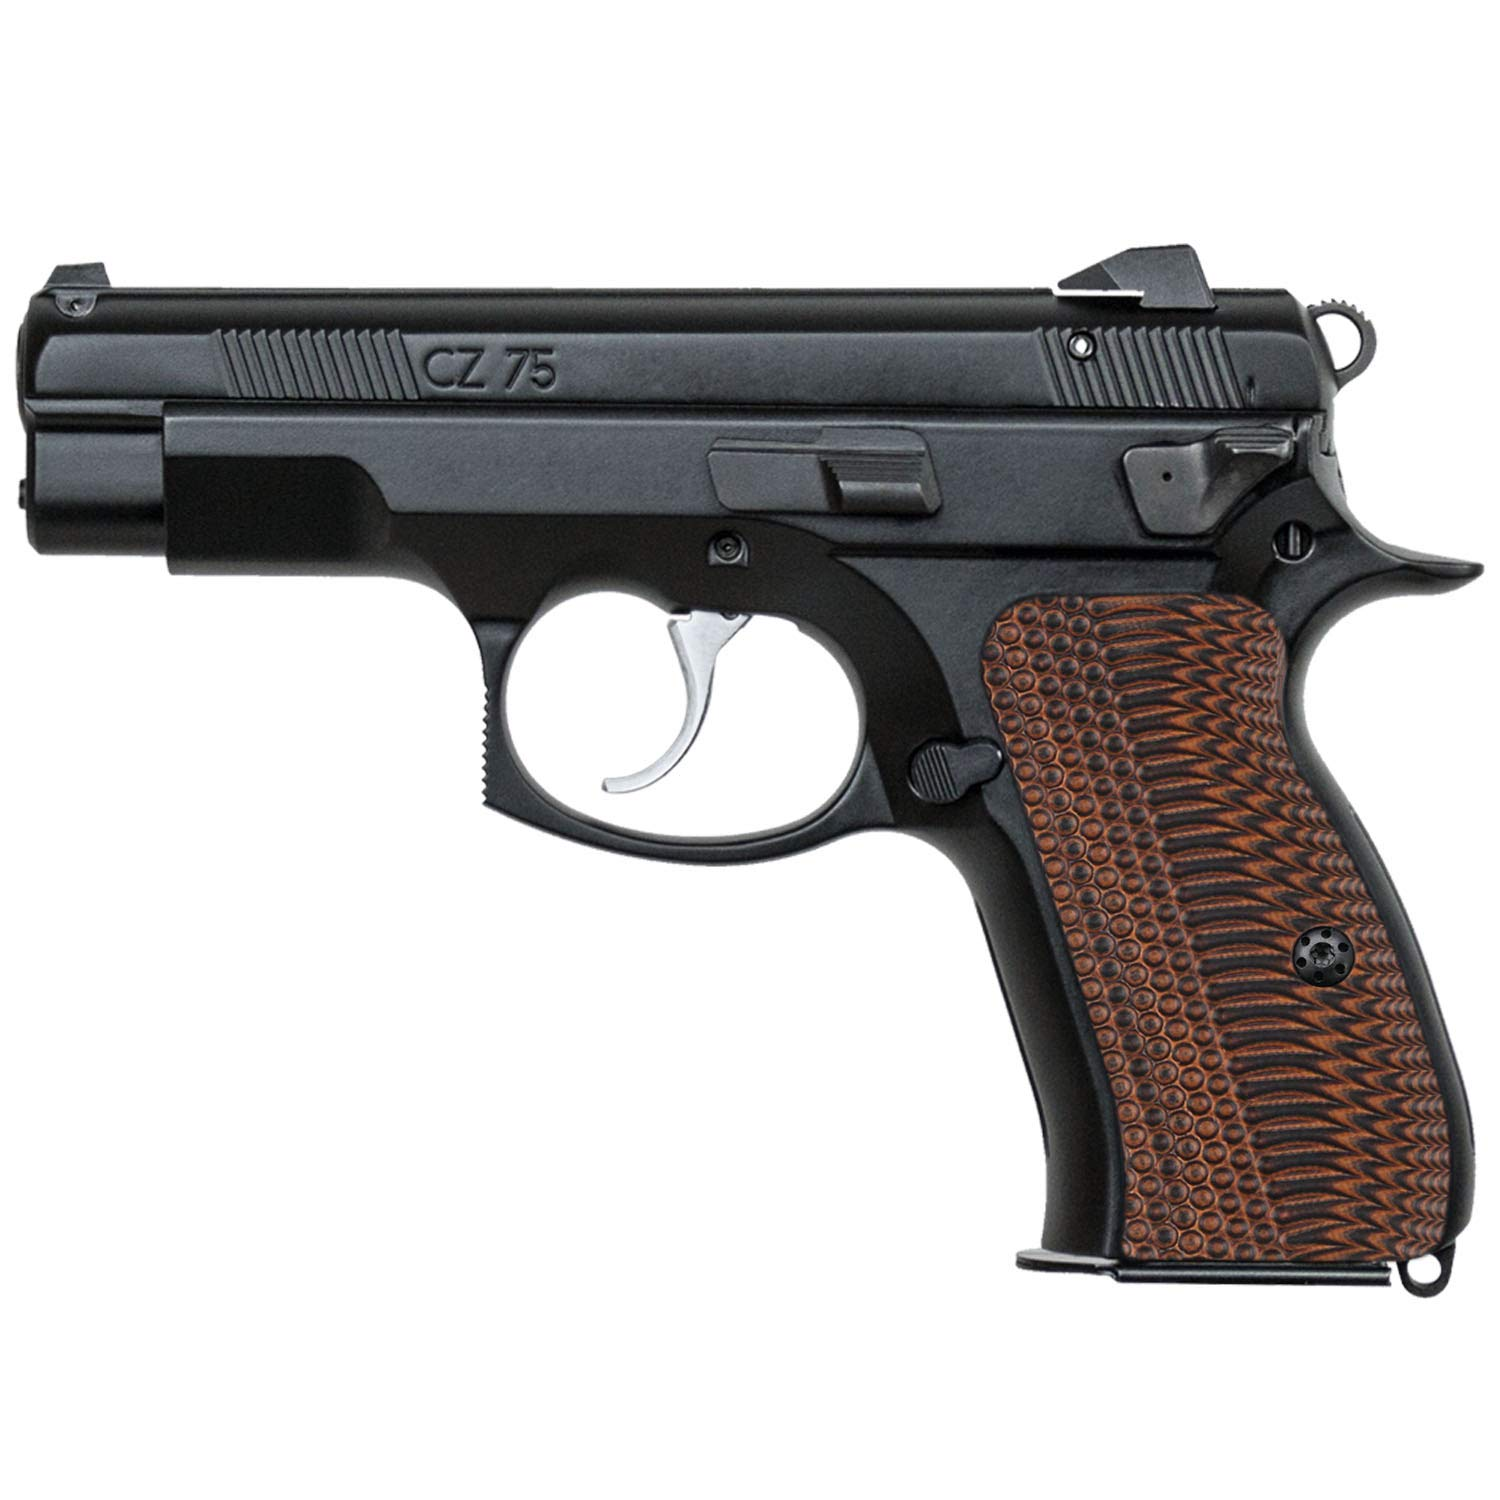 Cool Hand G10 Grips for CZ 75 Compact, Free Screws Included, OPS Texture (Tiger Stripe) by Cool Hand